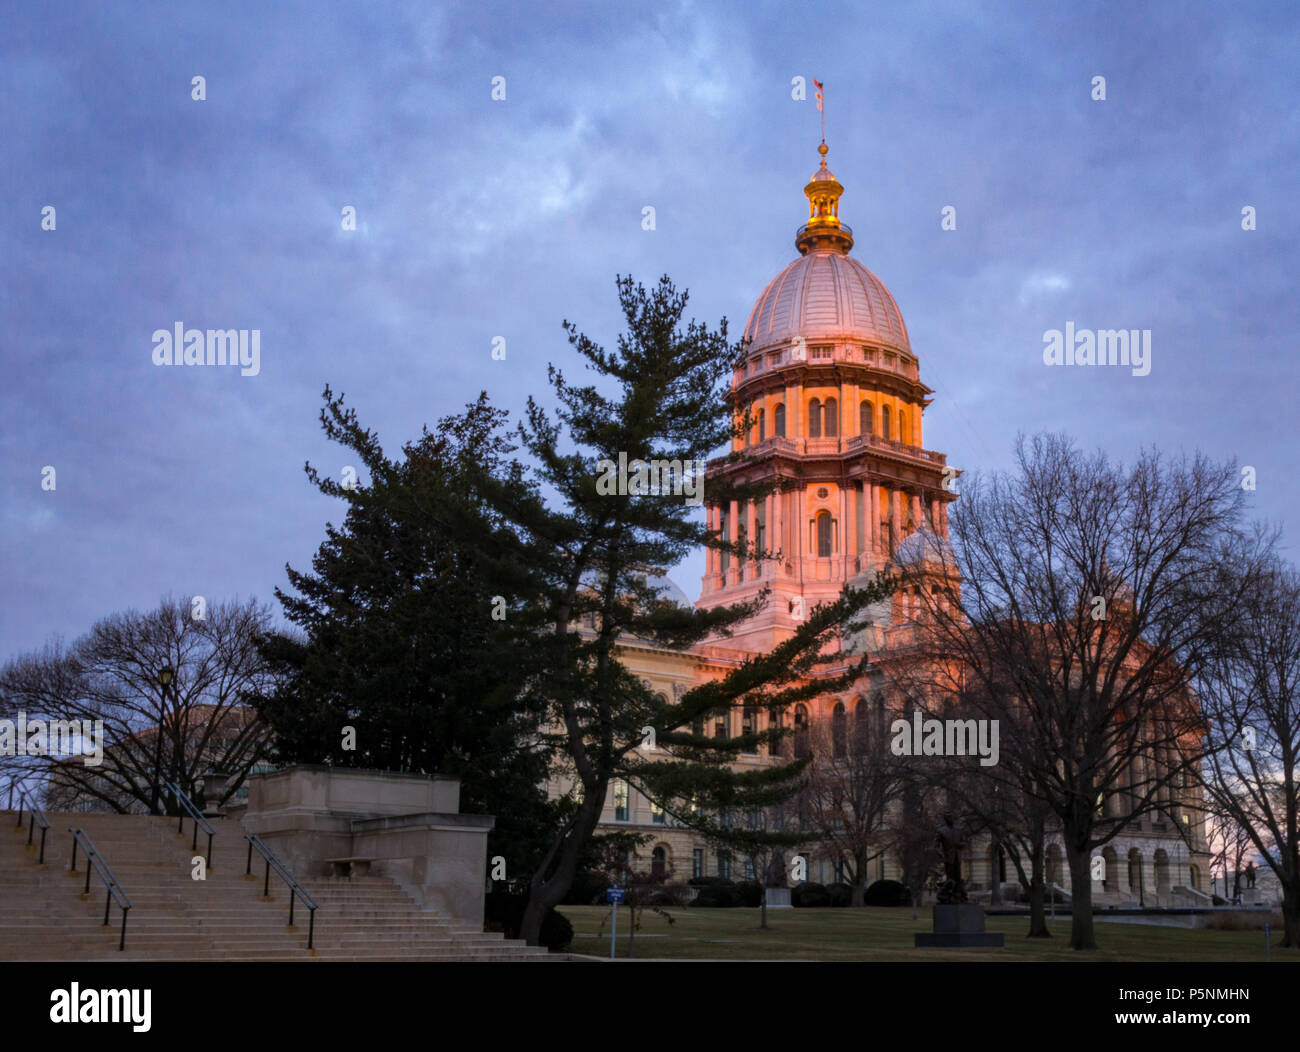 Illinois State Capitol building at sunrise with trees in Springfield Illinois - Stock Image